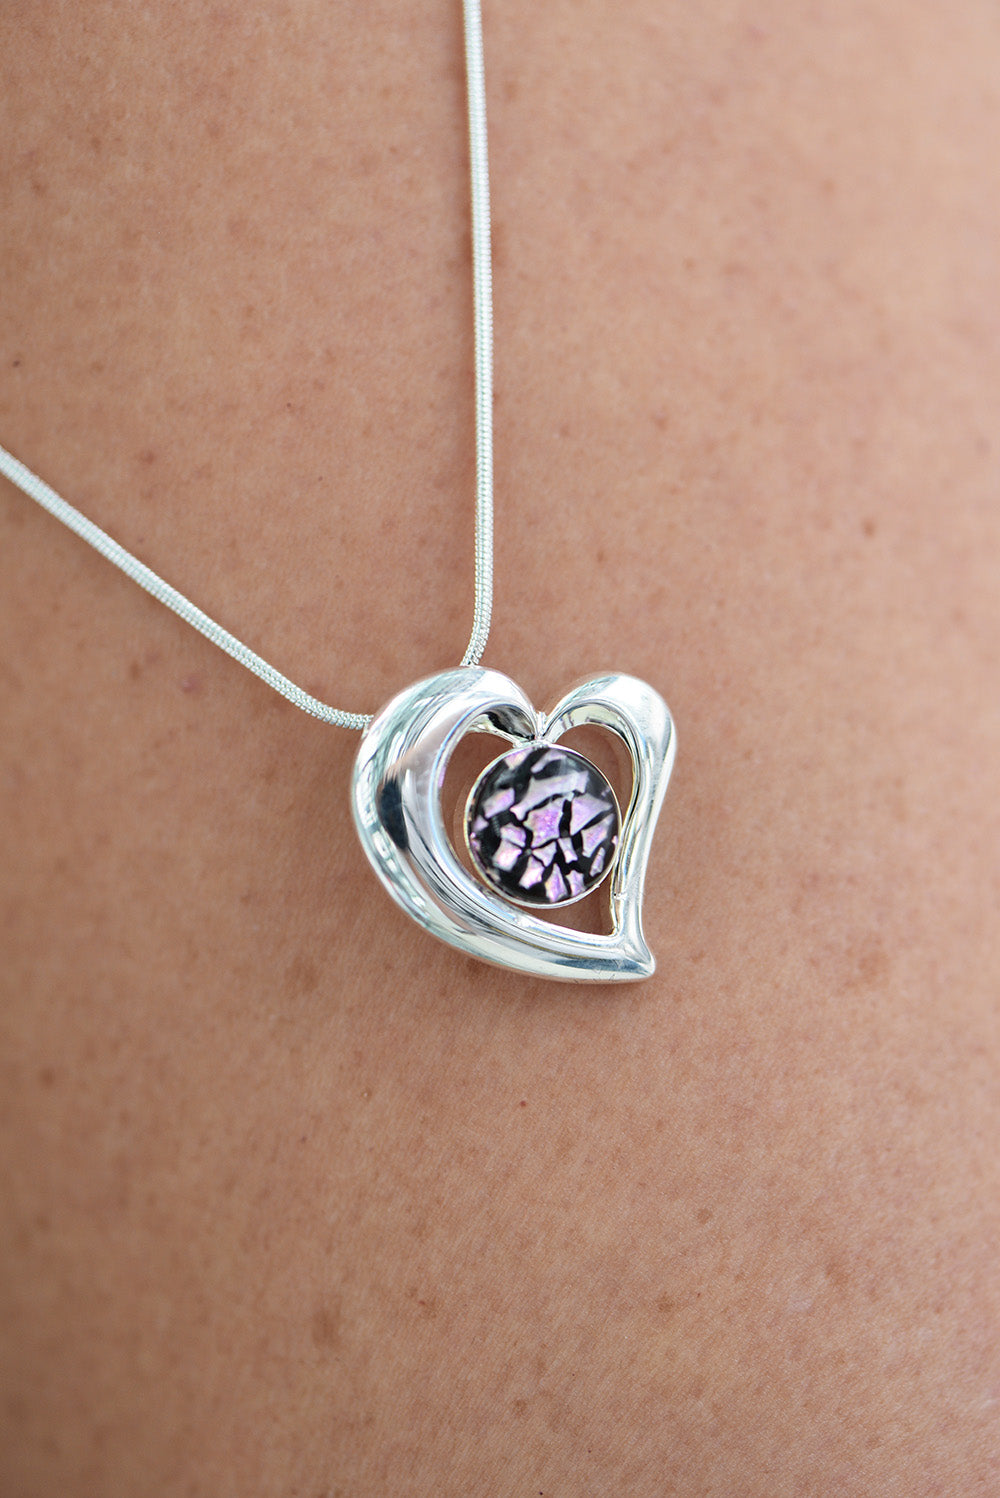 Bede Glass - Glass Heart Pendant - Purple and black